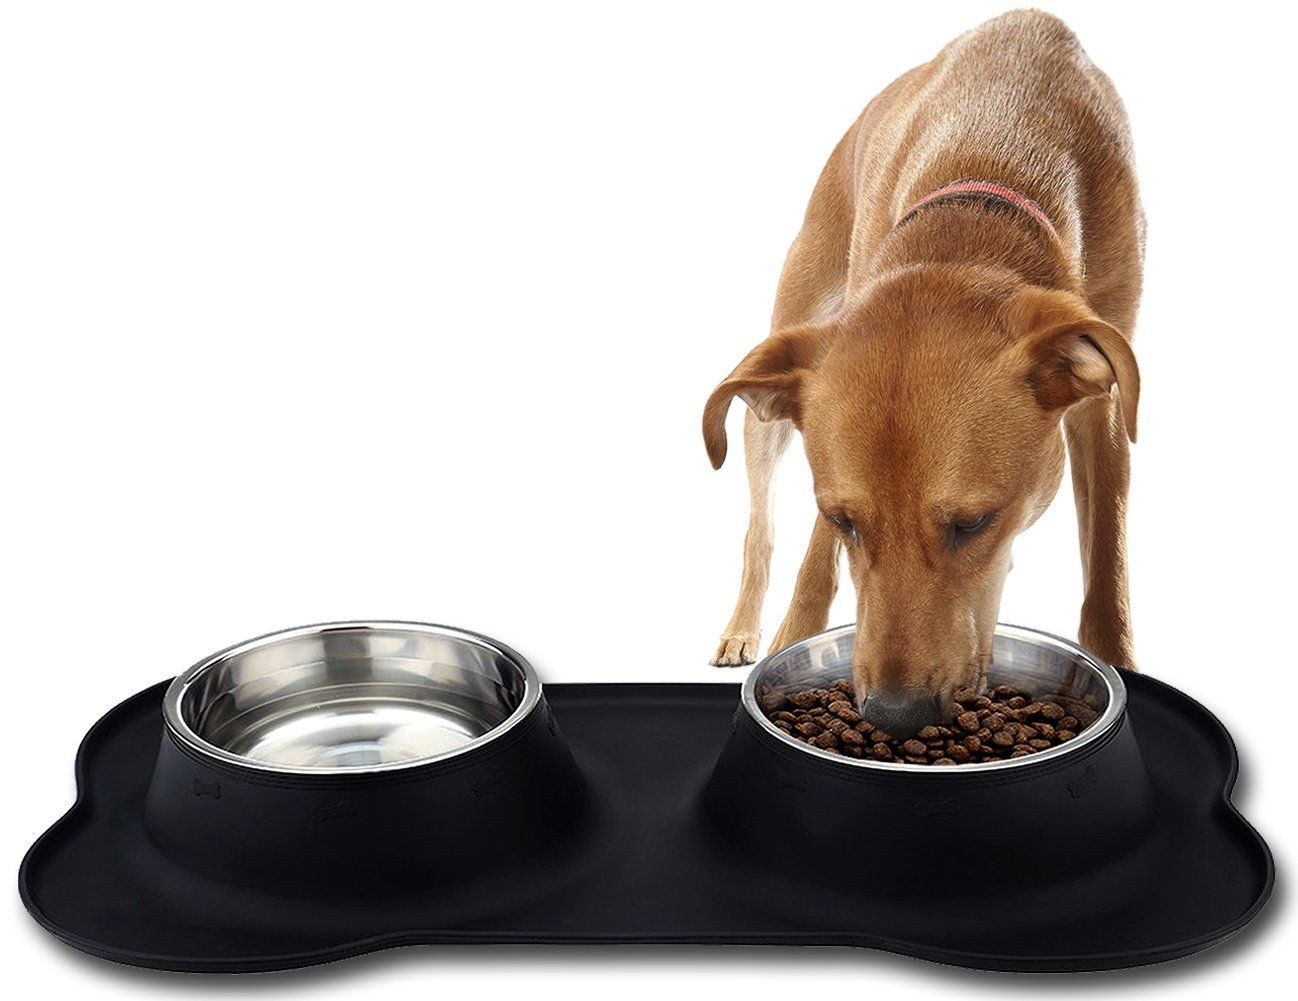 Voao Bone Dog Bowl Set Stainless Steel Dog Food Water Bowl With